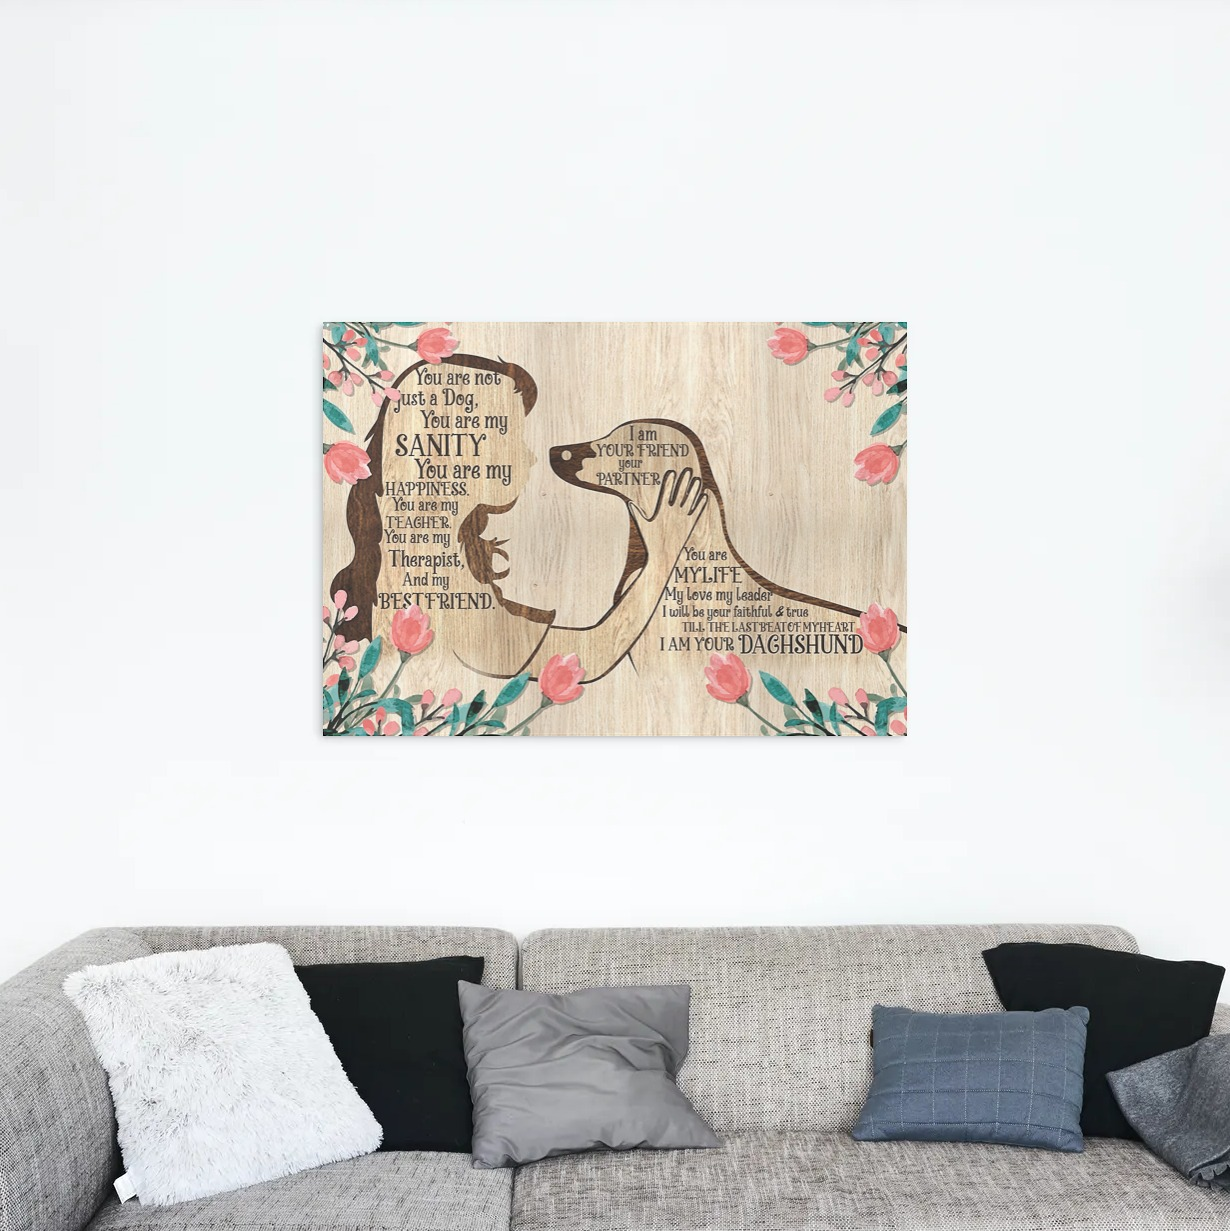 Dachshund Girl Dog You Are Not Just A Dog You Are My Sanity and Friend Canvas